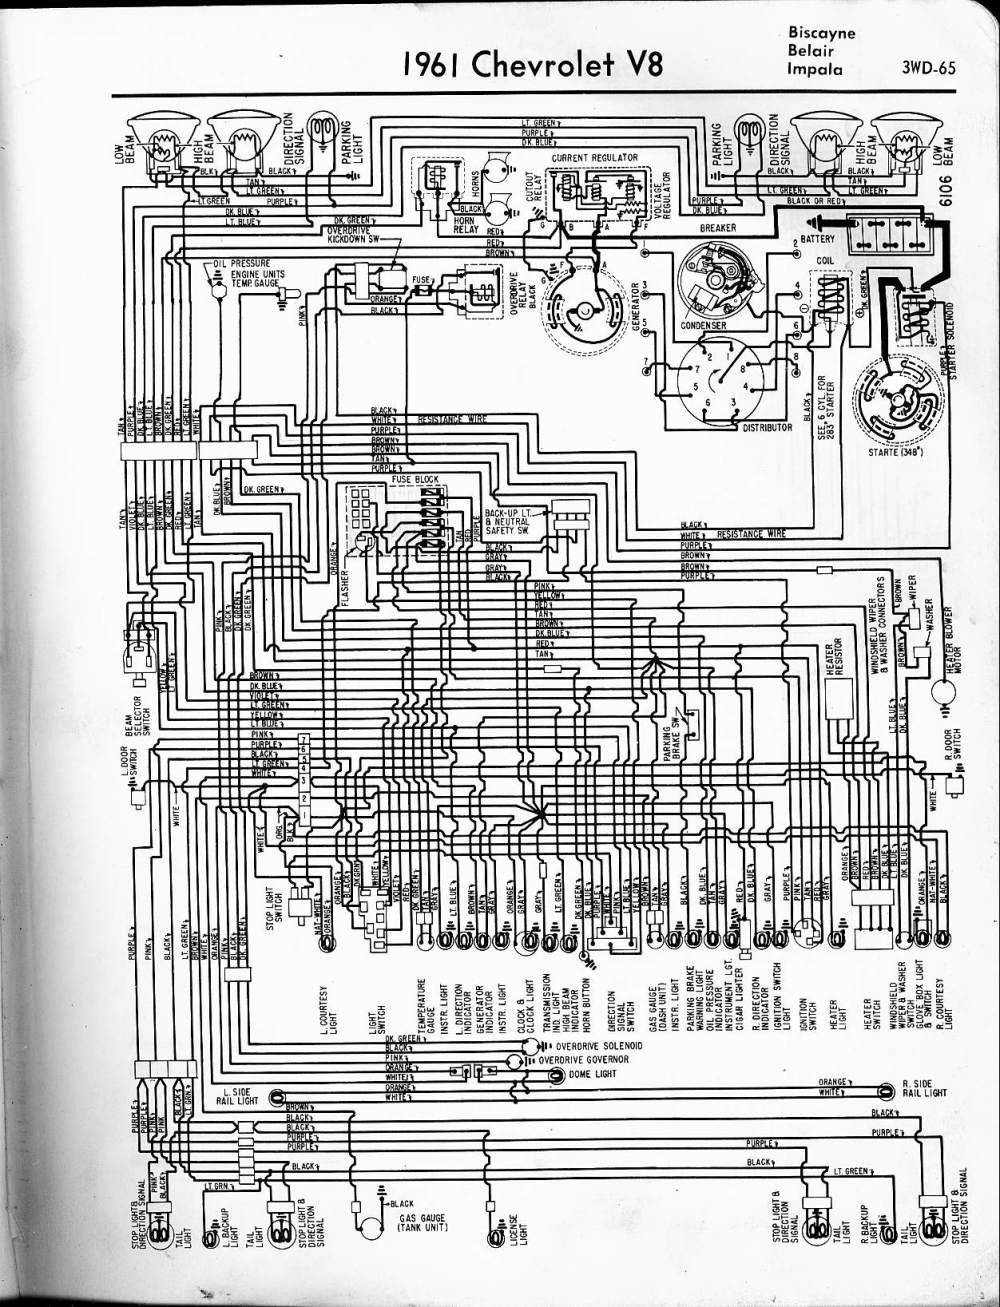 medium resolution of 1967 chevy impala wiring diagram wiring diagram todays 1963 chevy nova wiring diagram 1967 chevy impala wiring diagram